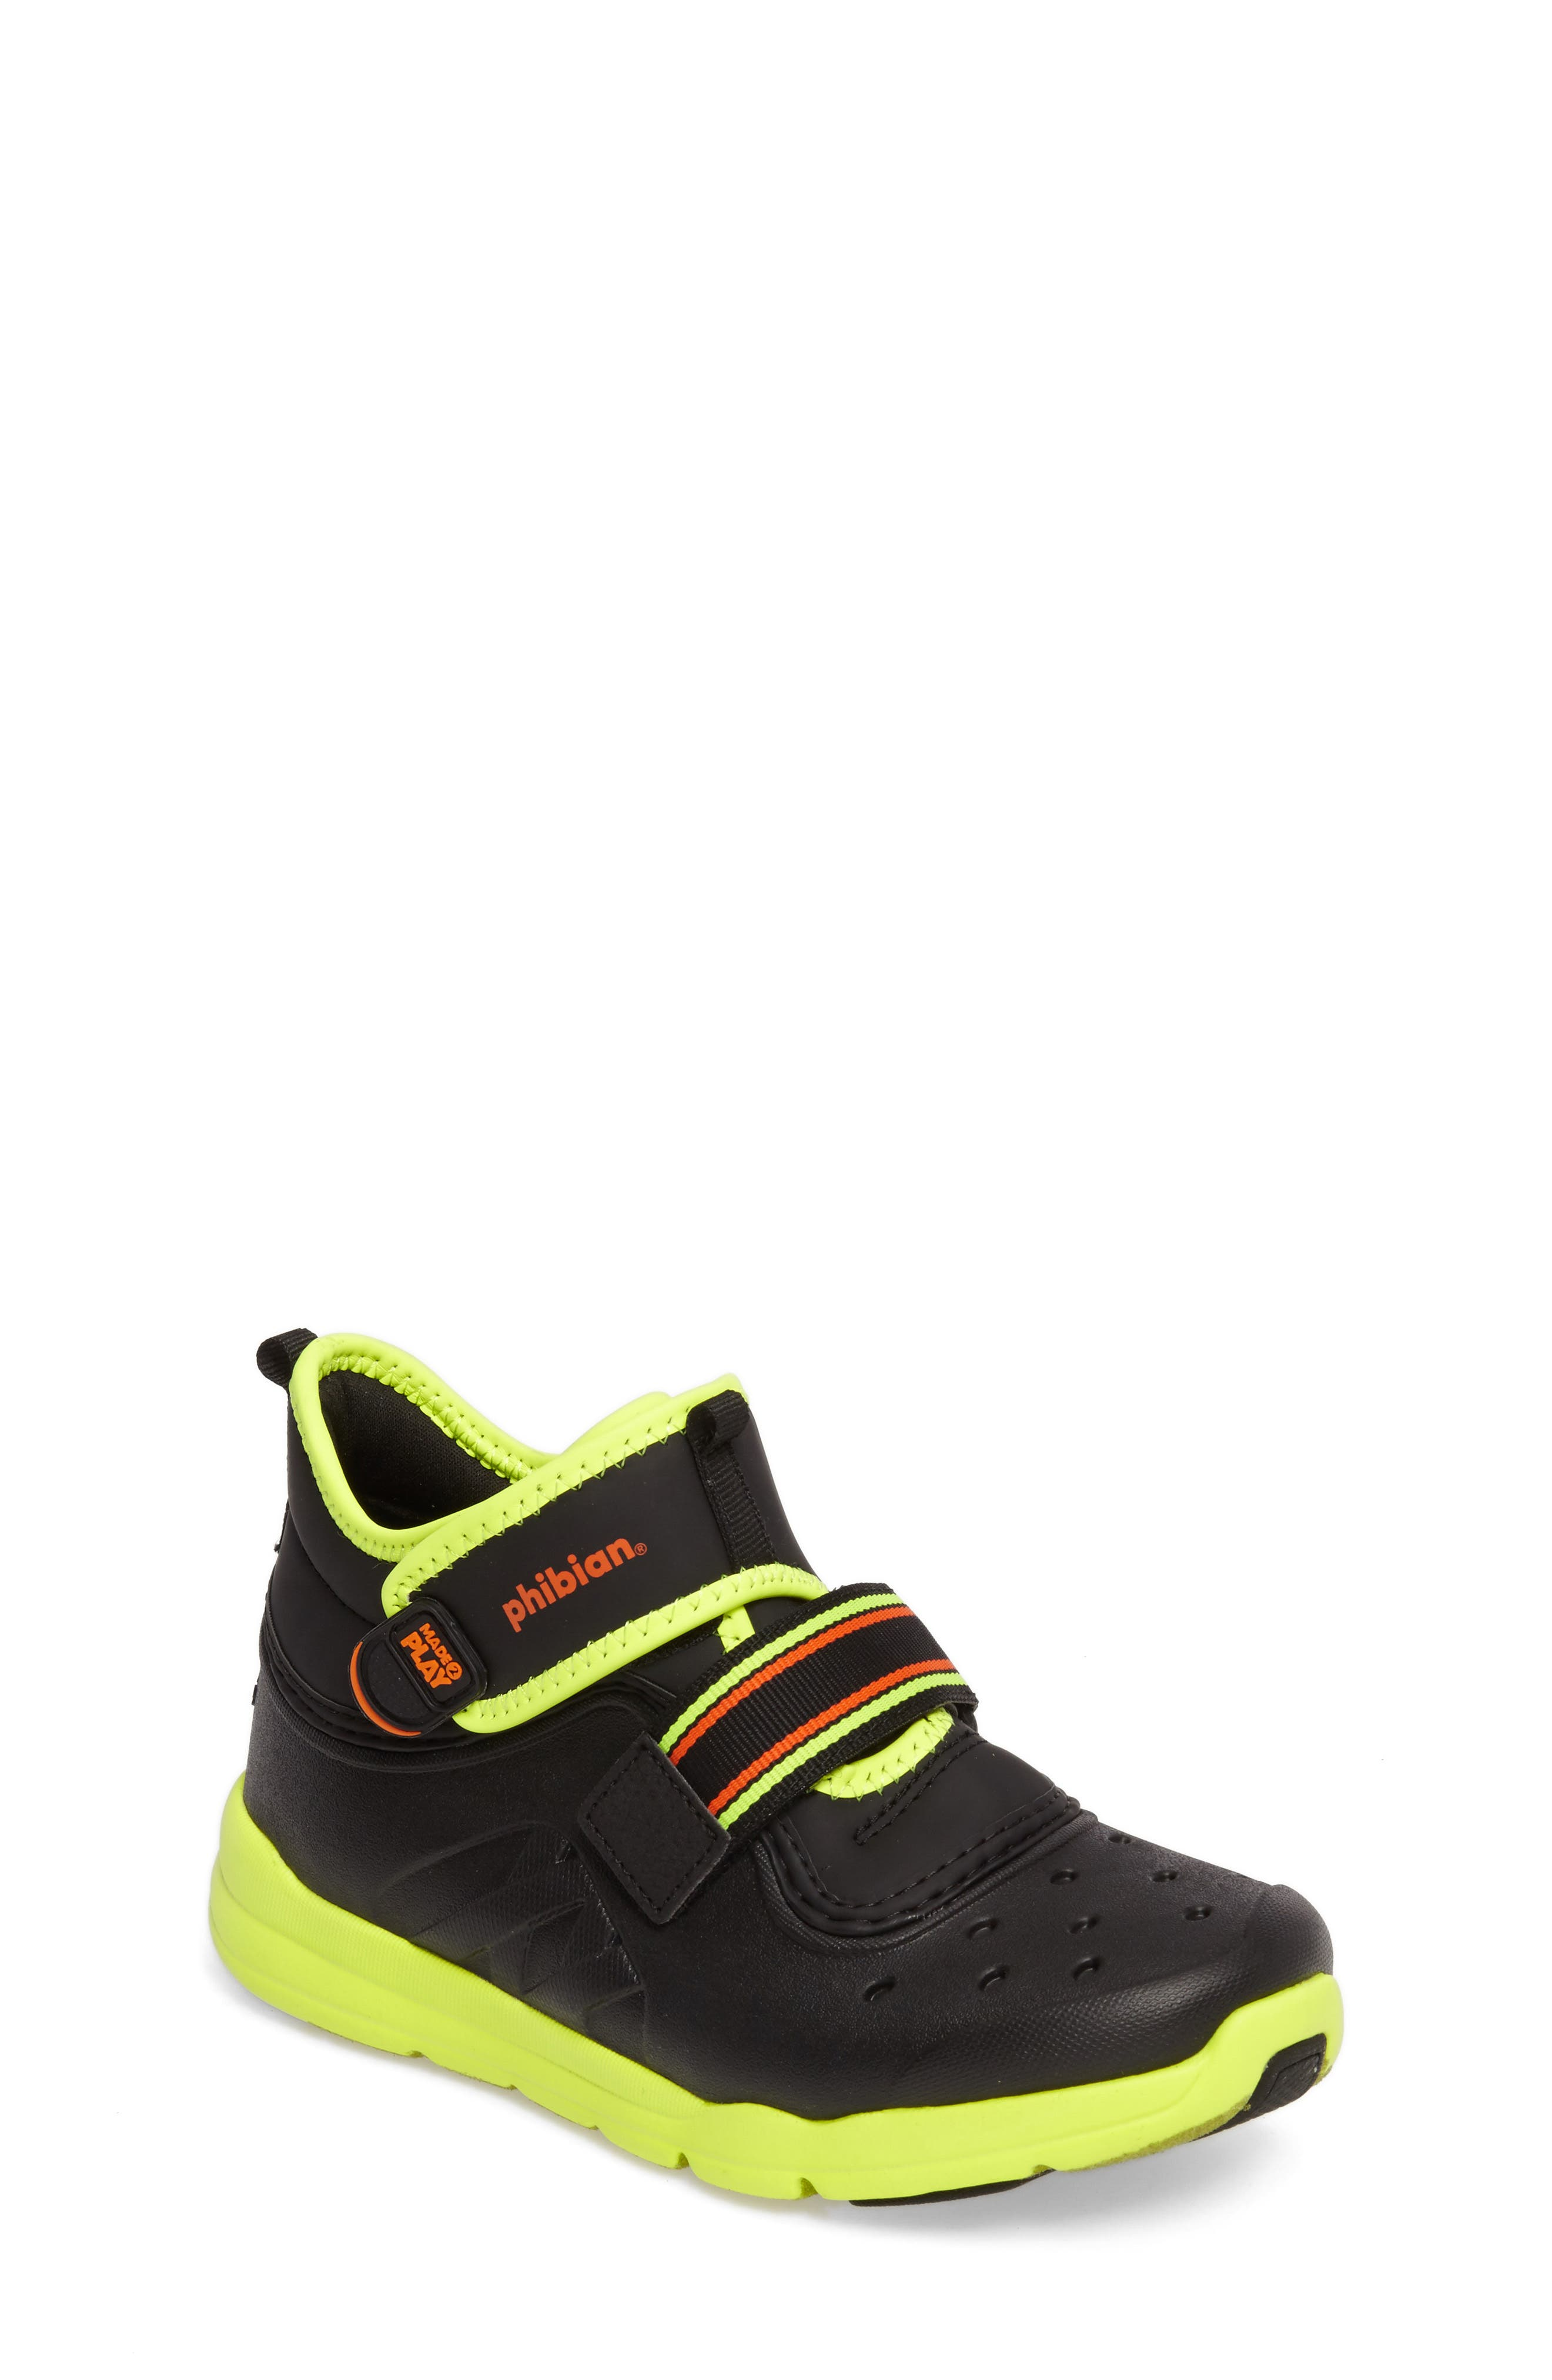 Made2Play<sup>®</sup> Phibian Mid Top Sneaker,                             Main thumbnail 1, color,